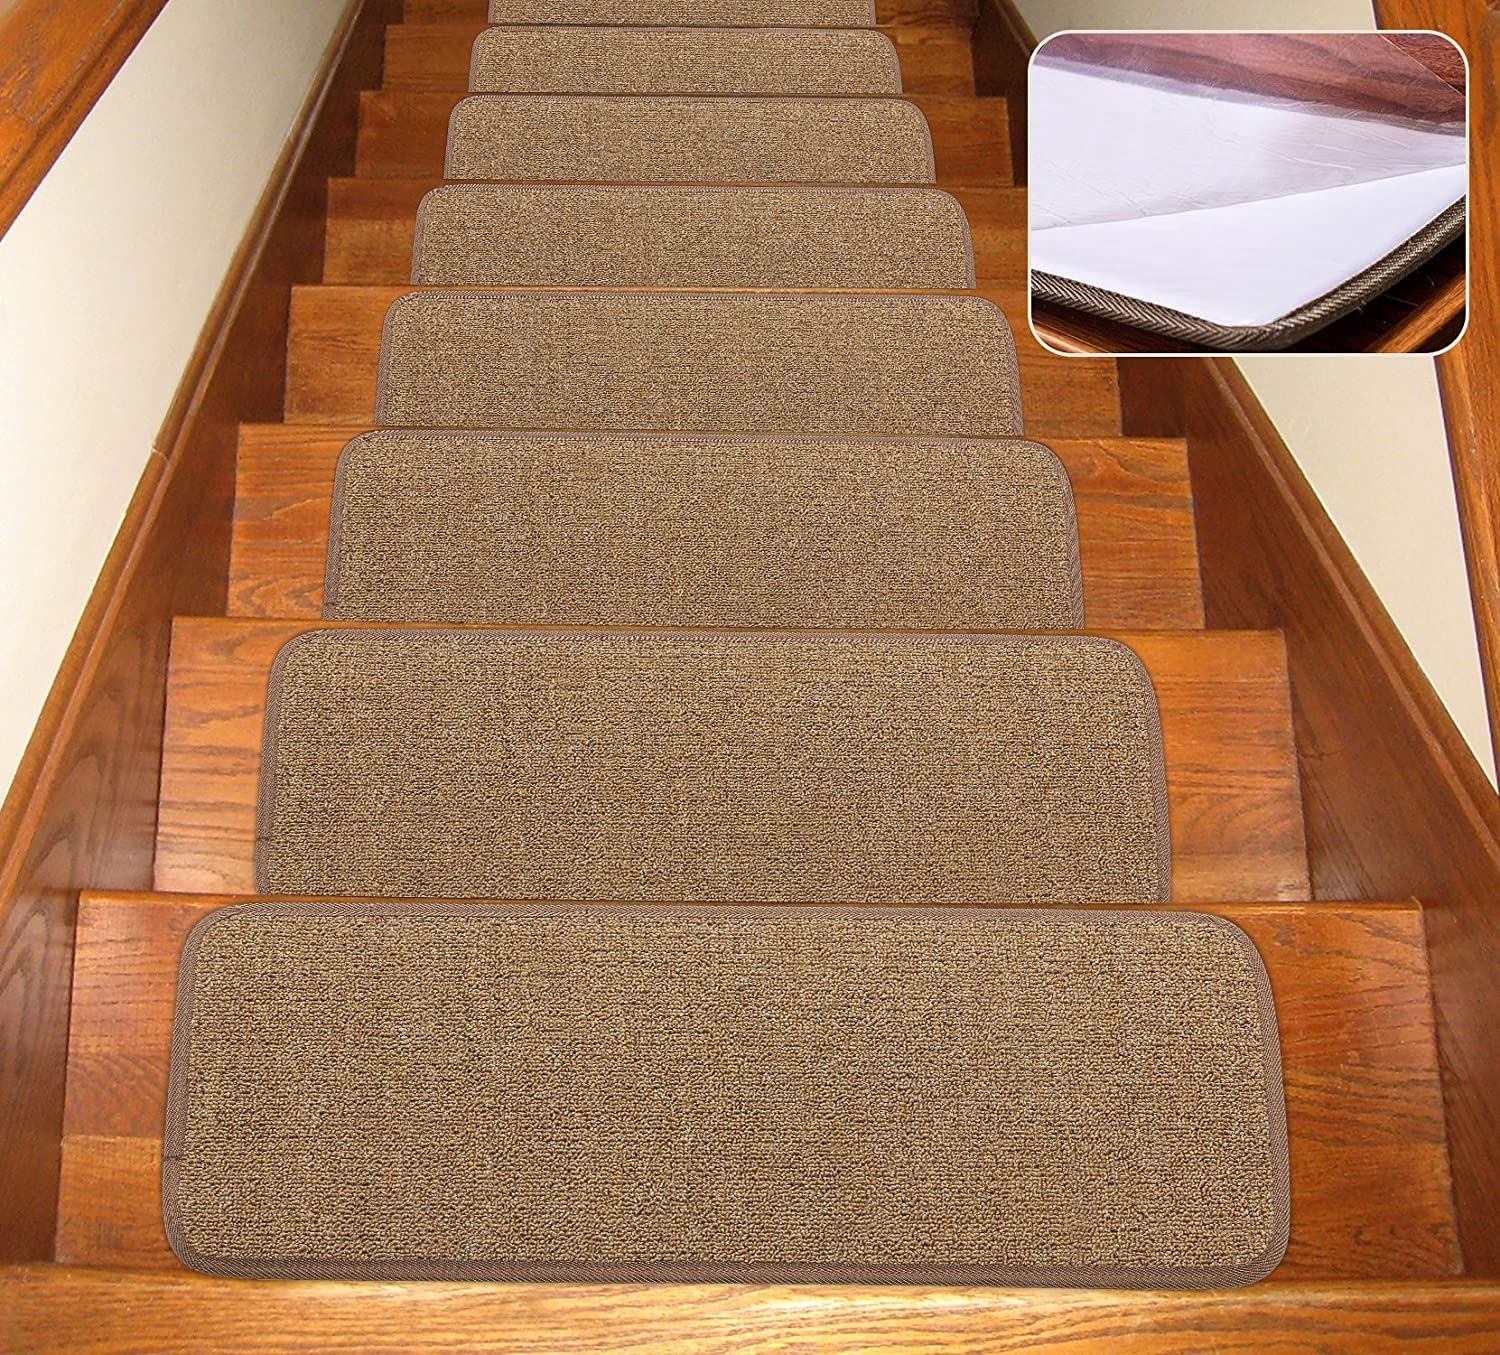 Seloom Stair Treads Carpet Non Slip With Skid Resistant Rubber   Converting Carpeted Stairs To Hardwood   Stair Case   Treads   Staircase Makeover   Stain   Wood Flooring